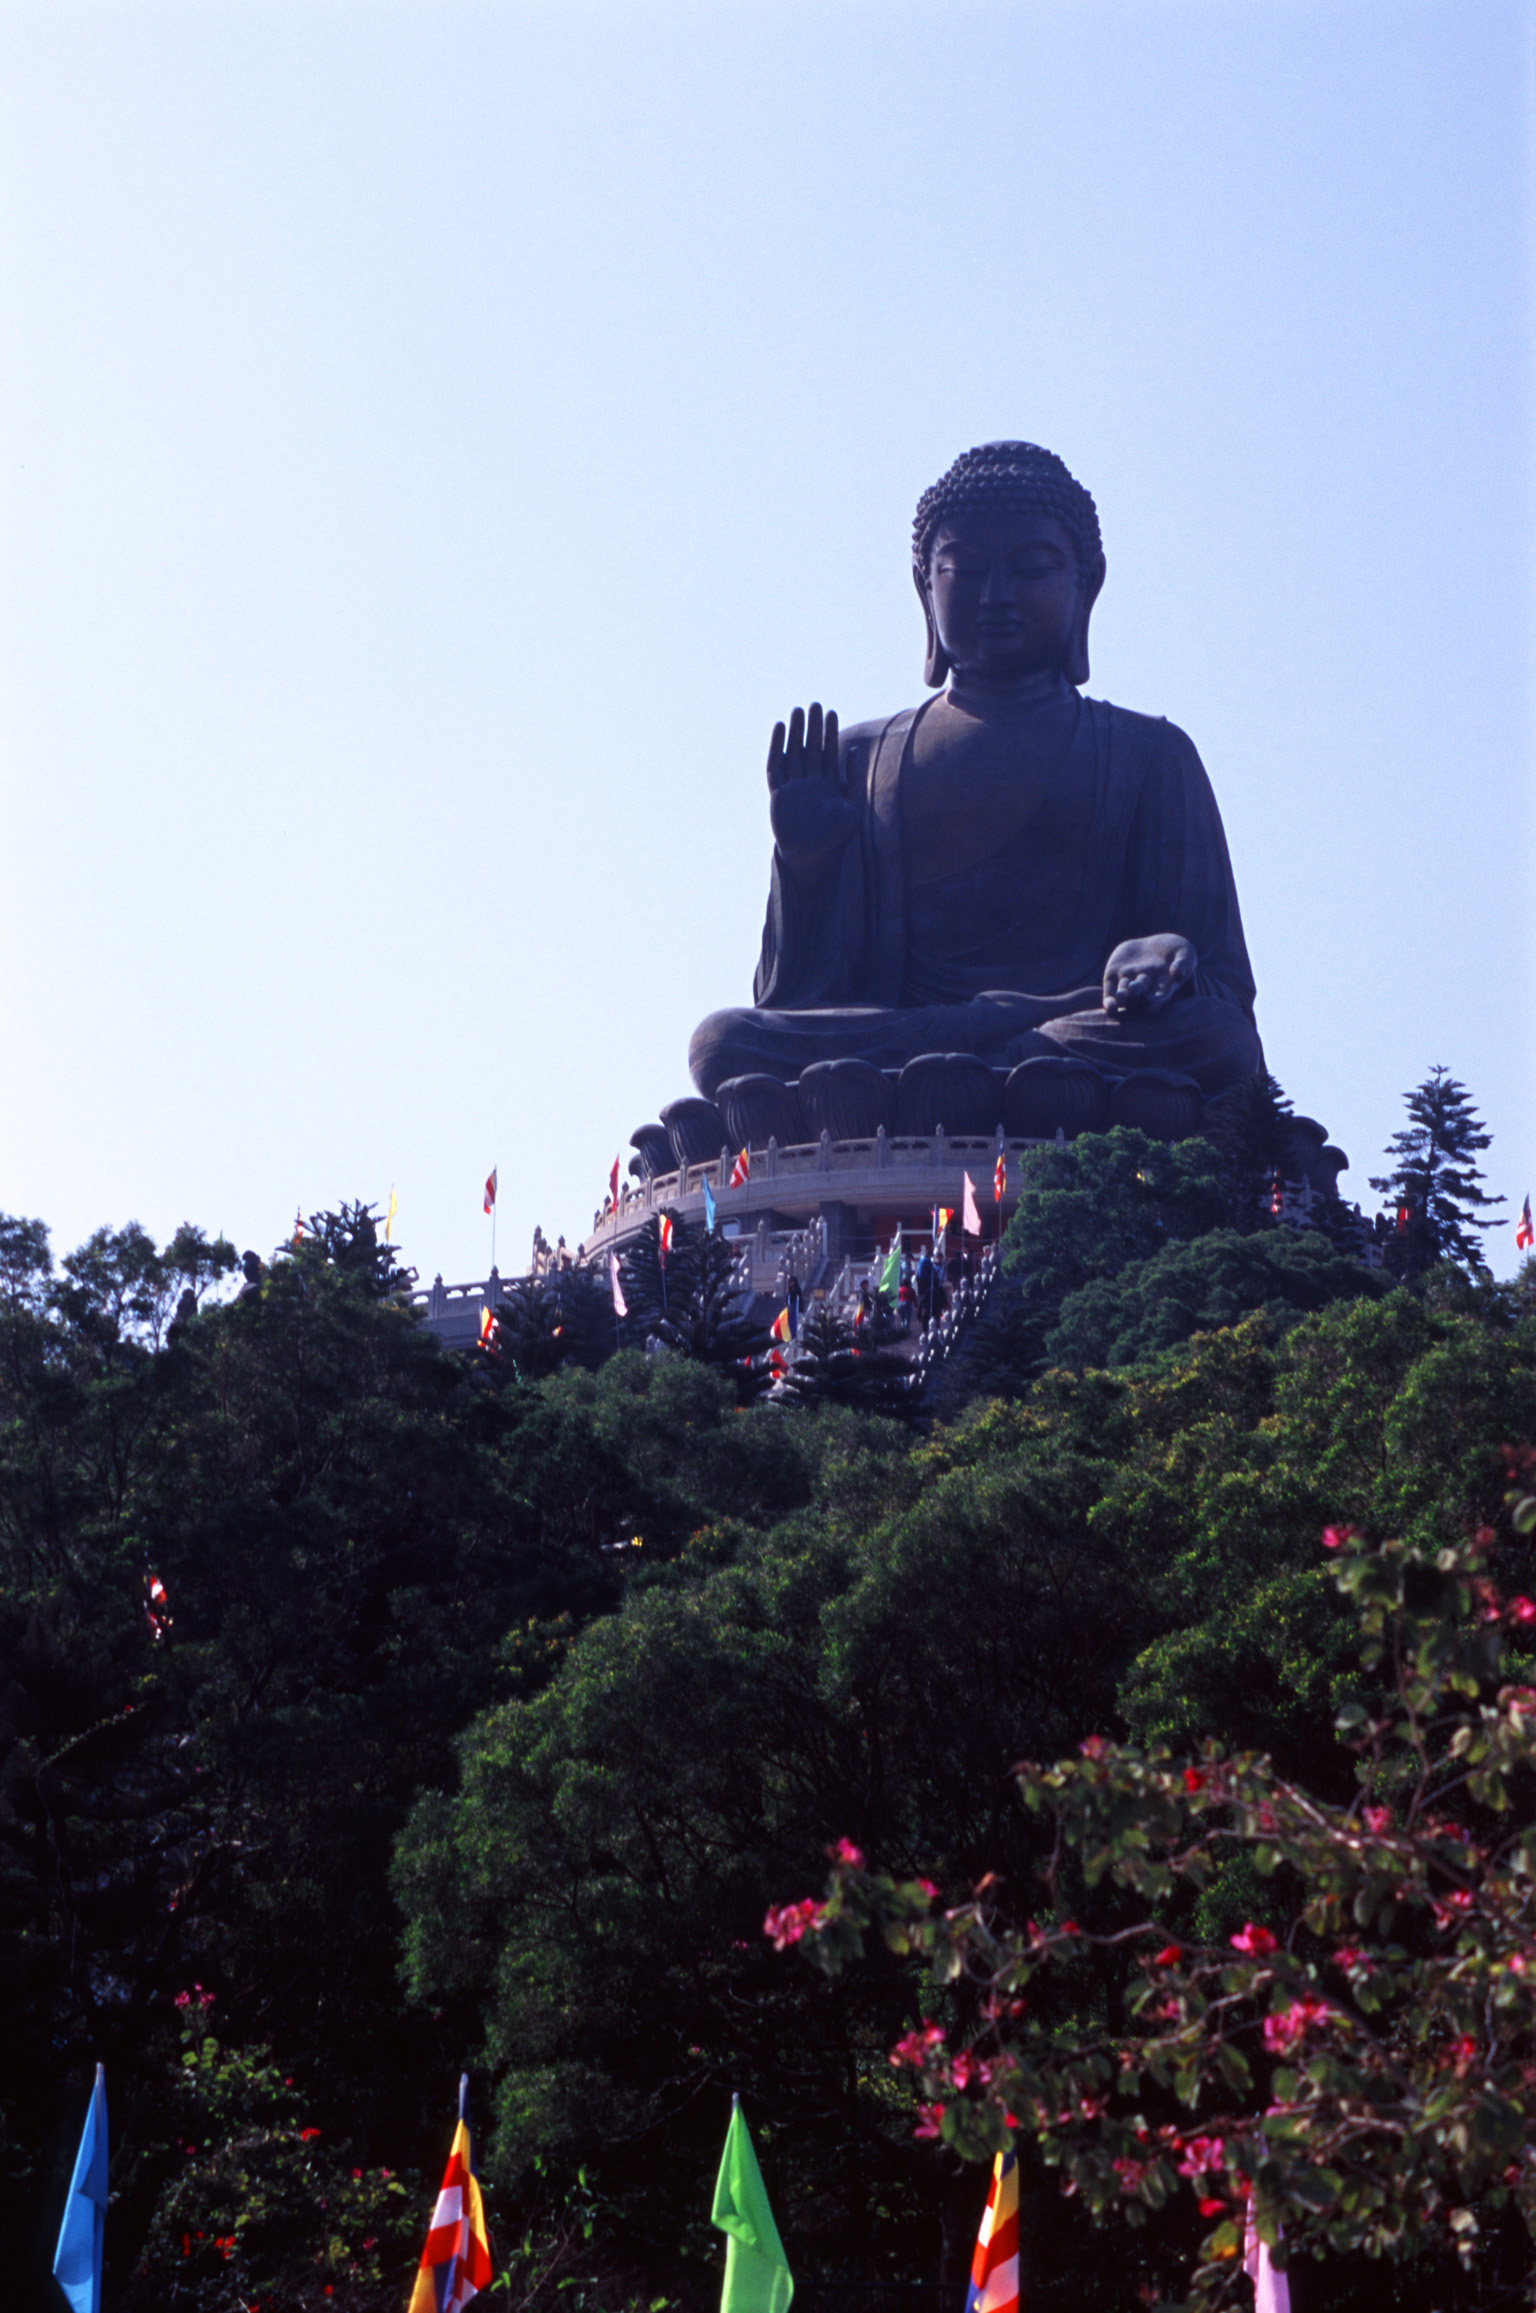 Famous Vintage Big Tian Tan Buddha Structure in Lantau Island, Hong Kong. Surrounded by Tall Green Trees.